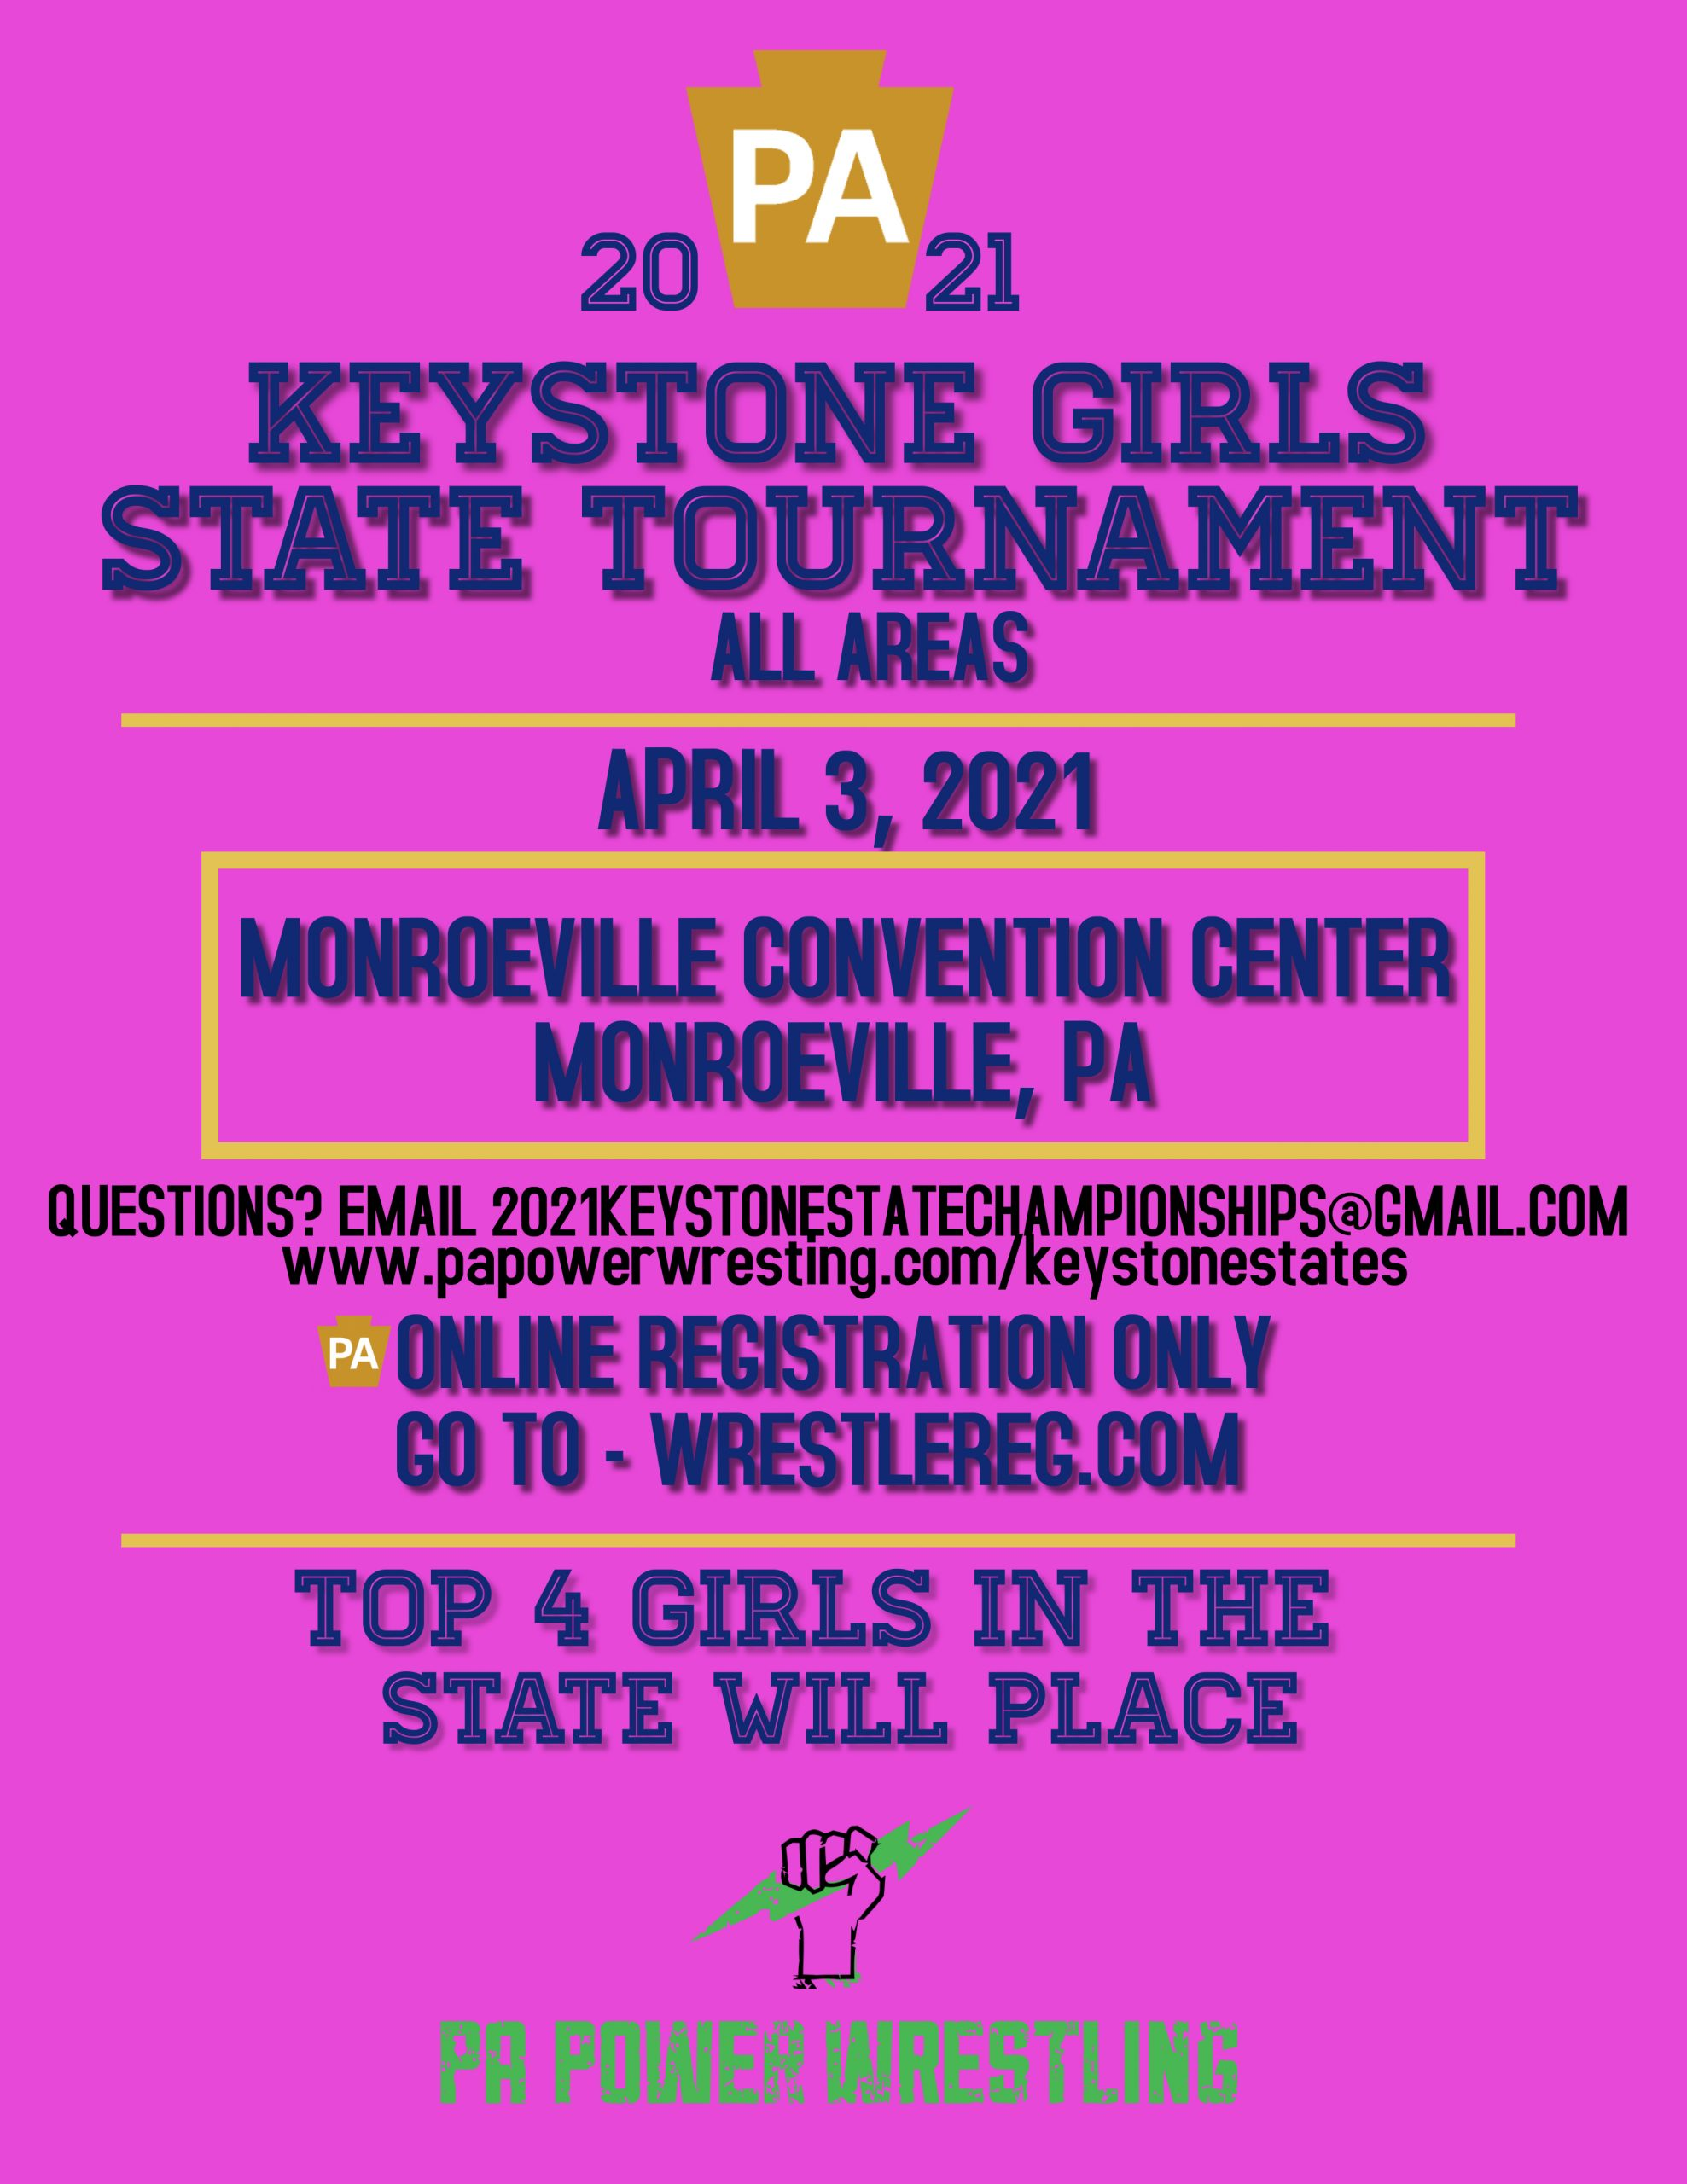 KEYSTONE GIRLS